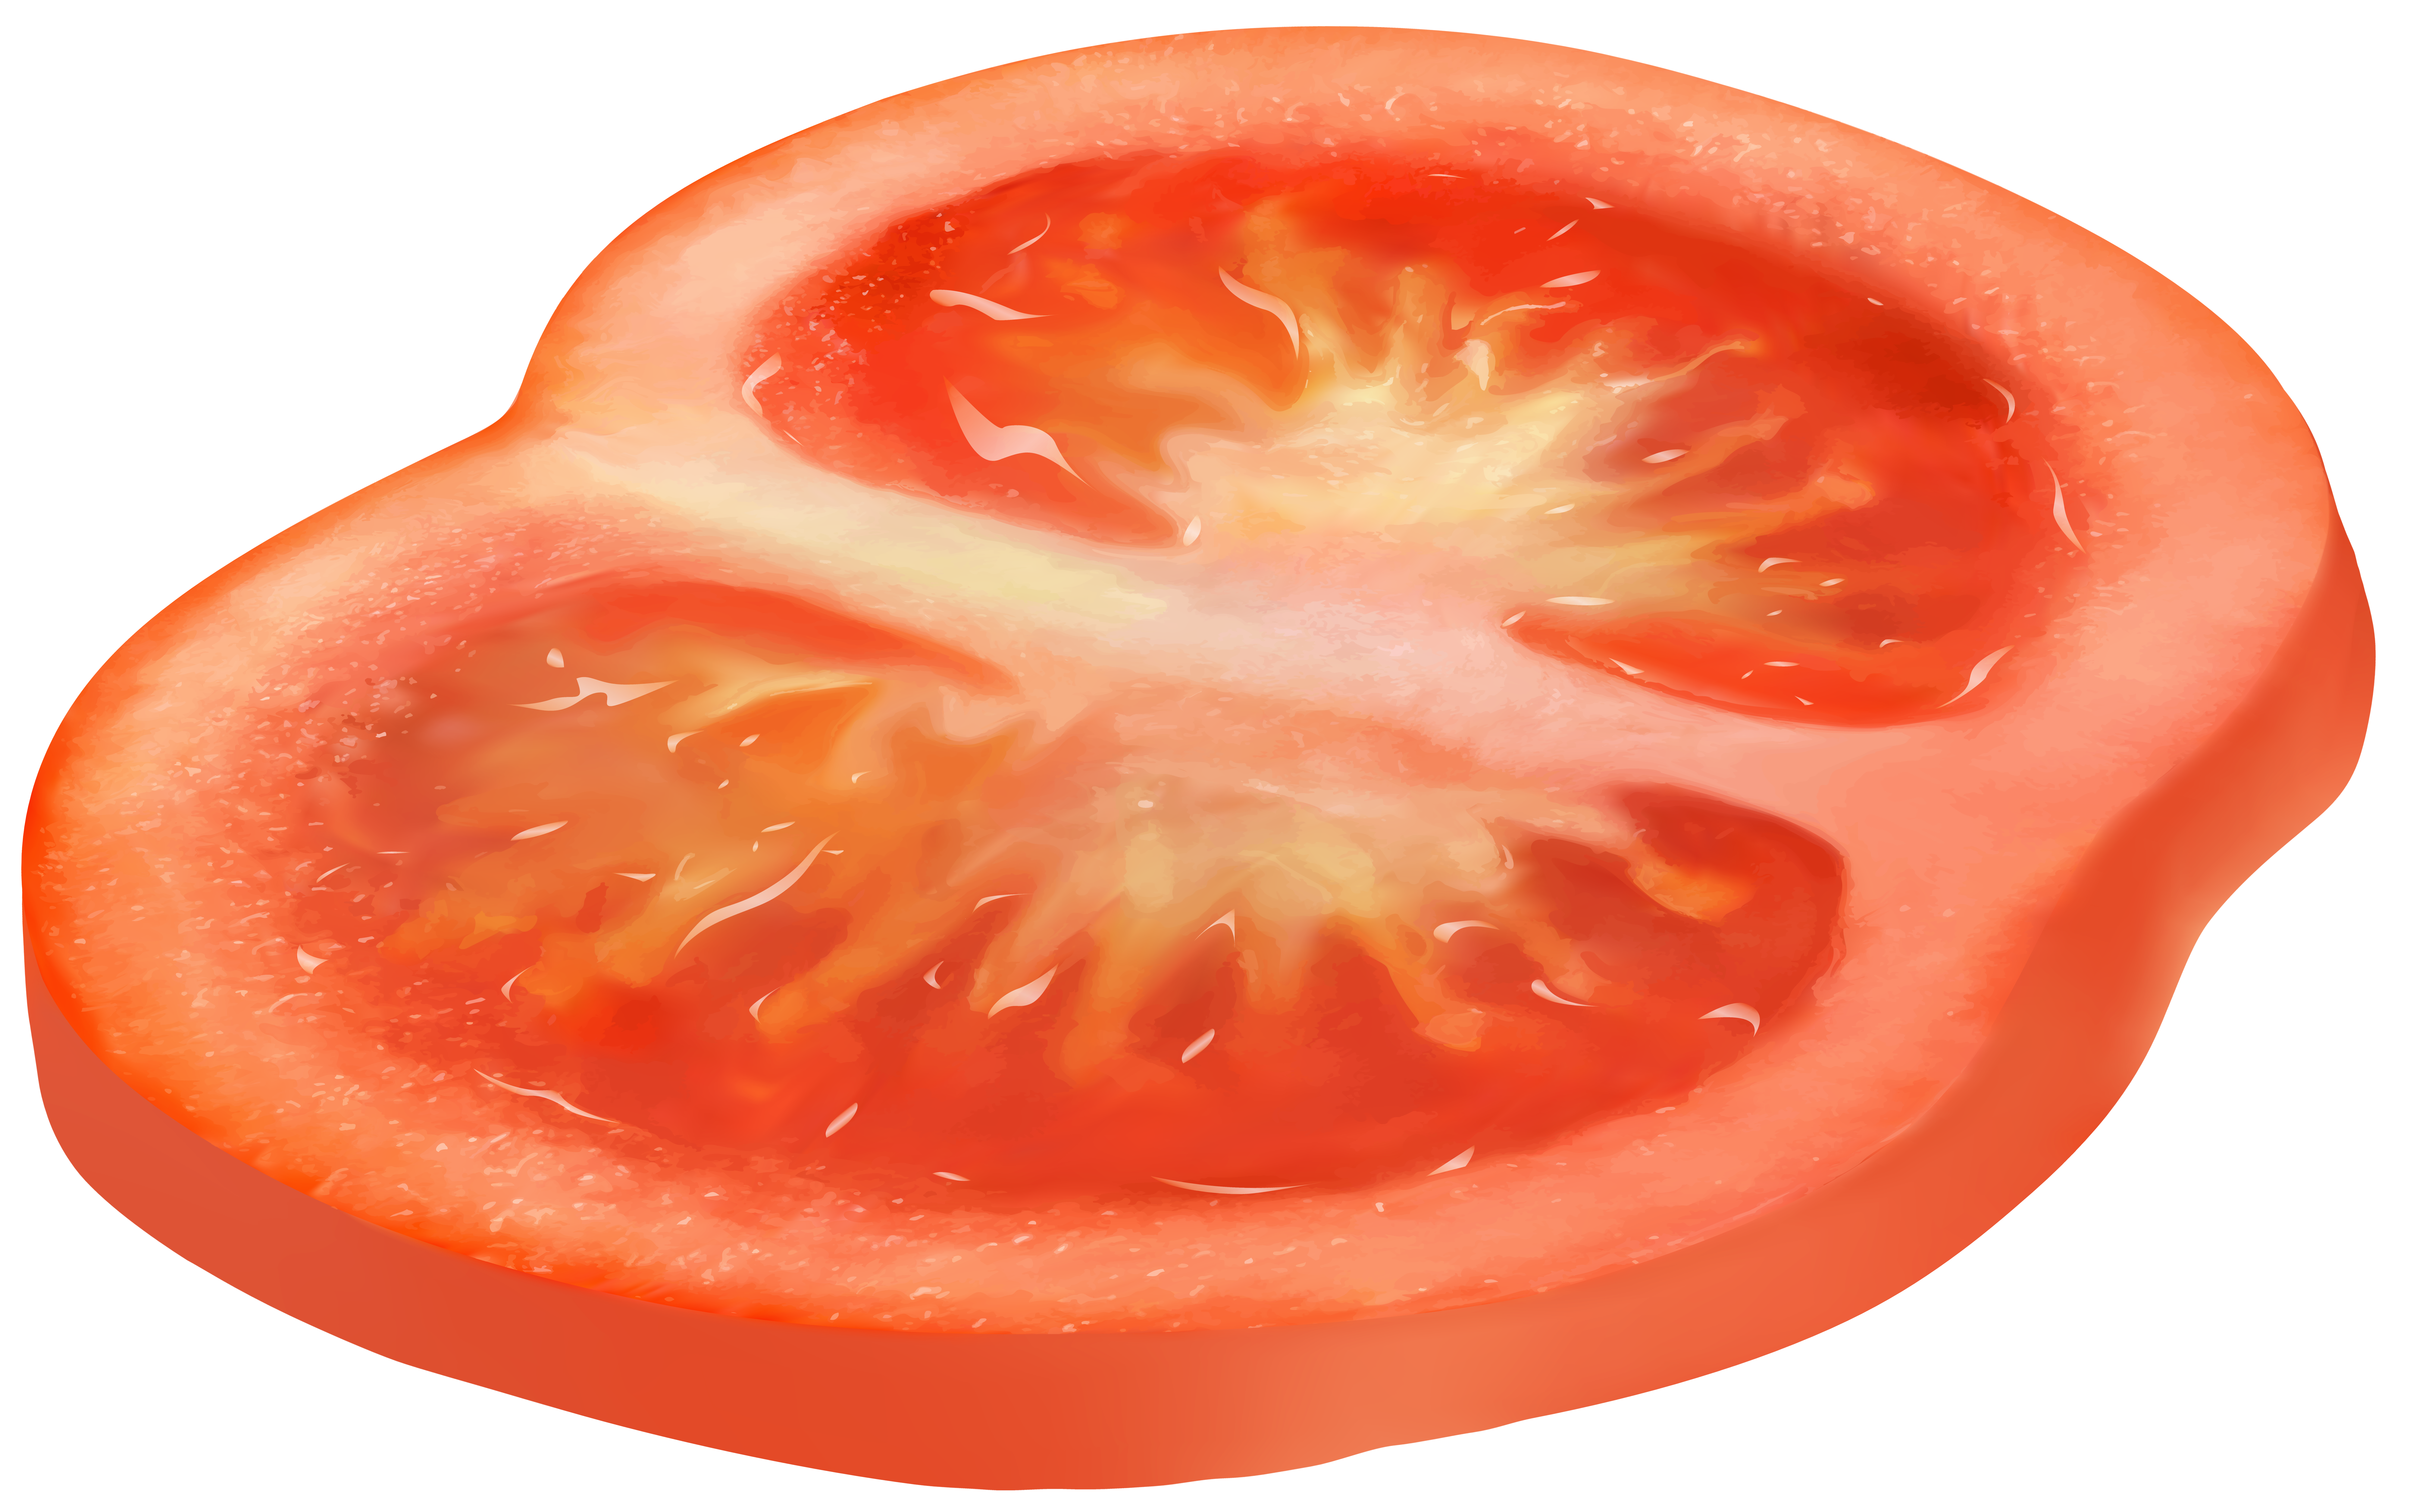 Circle png gallery yopriceville. Tomatoes clipart sliced tomato